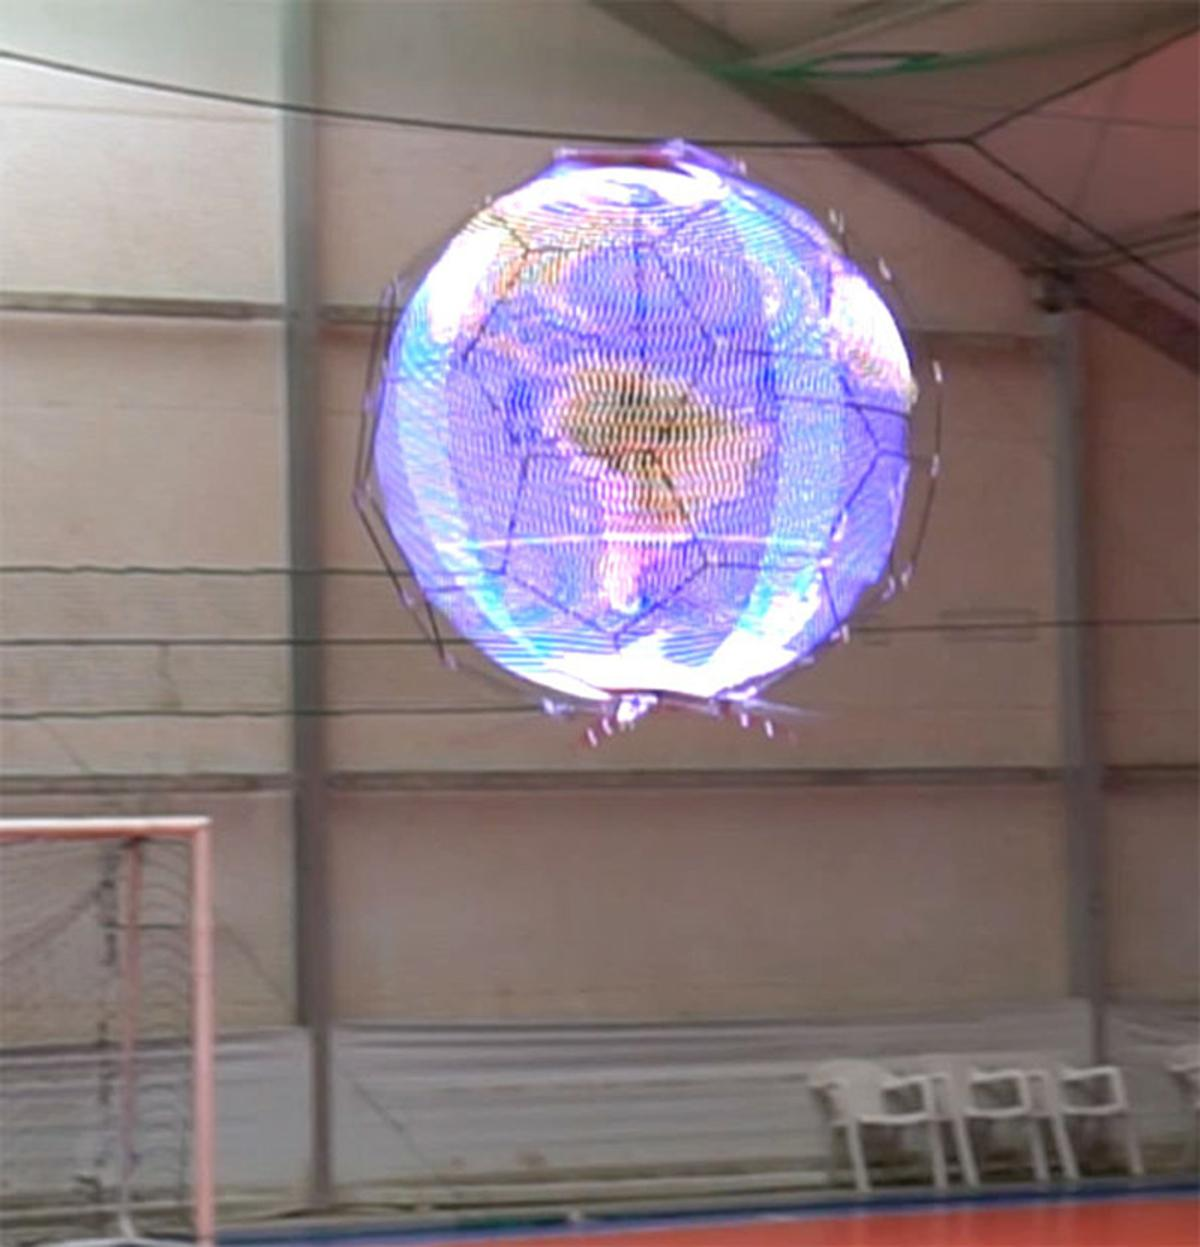 NTT Docomo'sspherical drone display forms an aerial display measuring 144 pixels high and 136 pixels in circumference